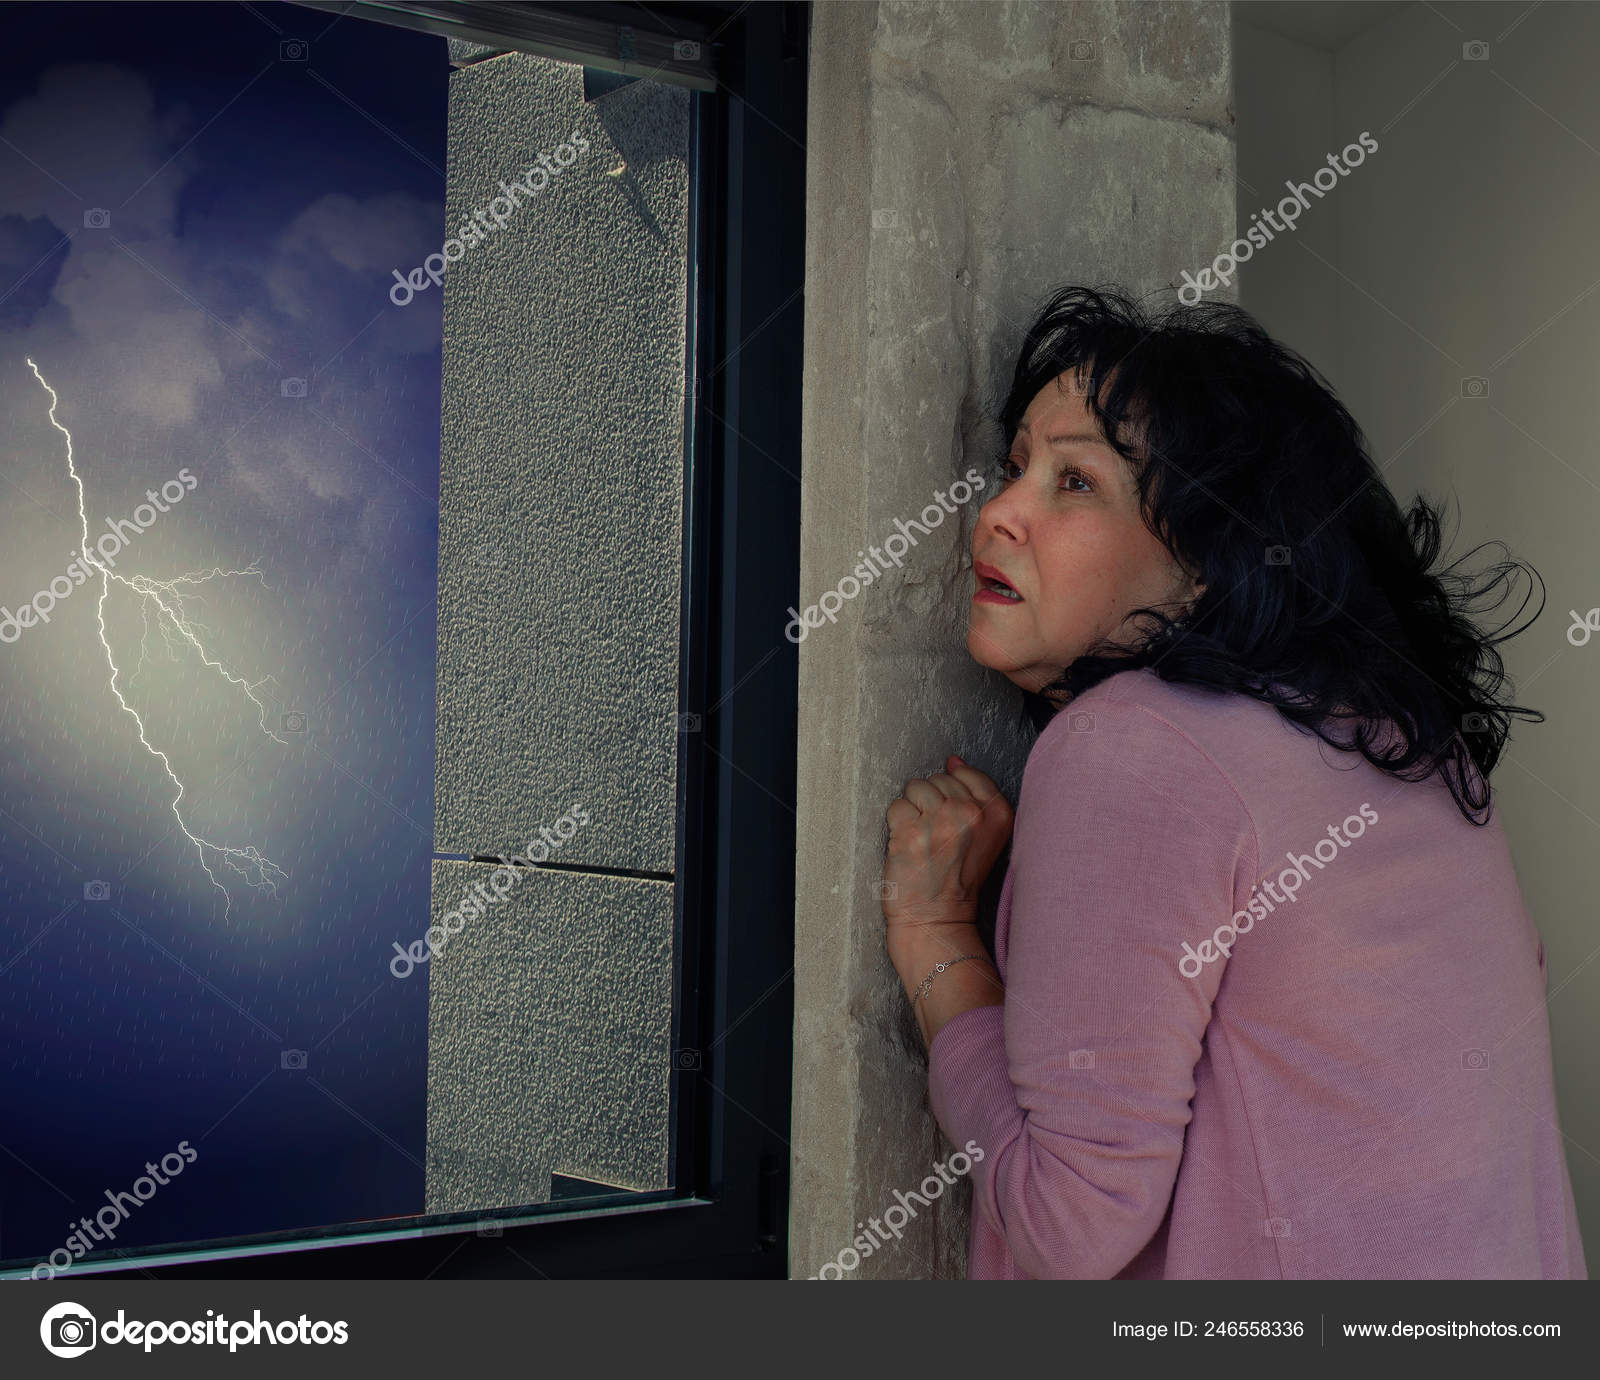 Mature woman runs exposure therapy against astraphobia